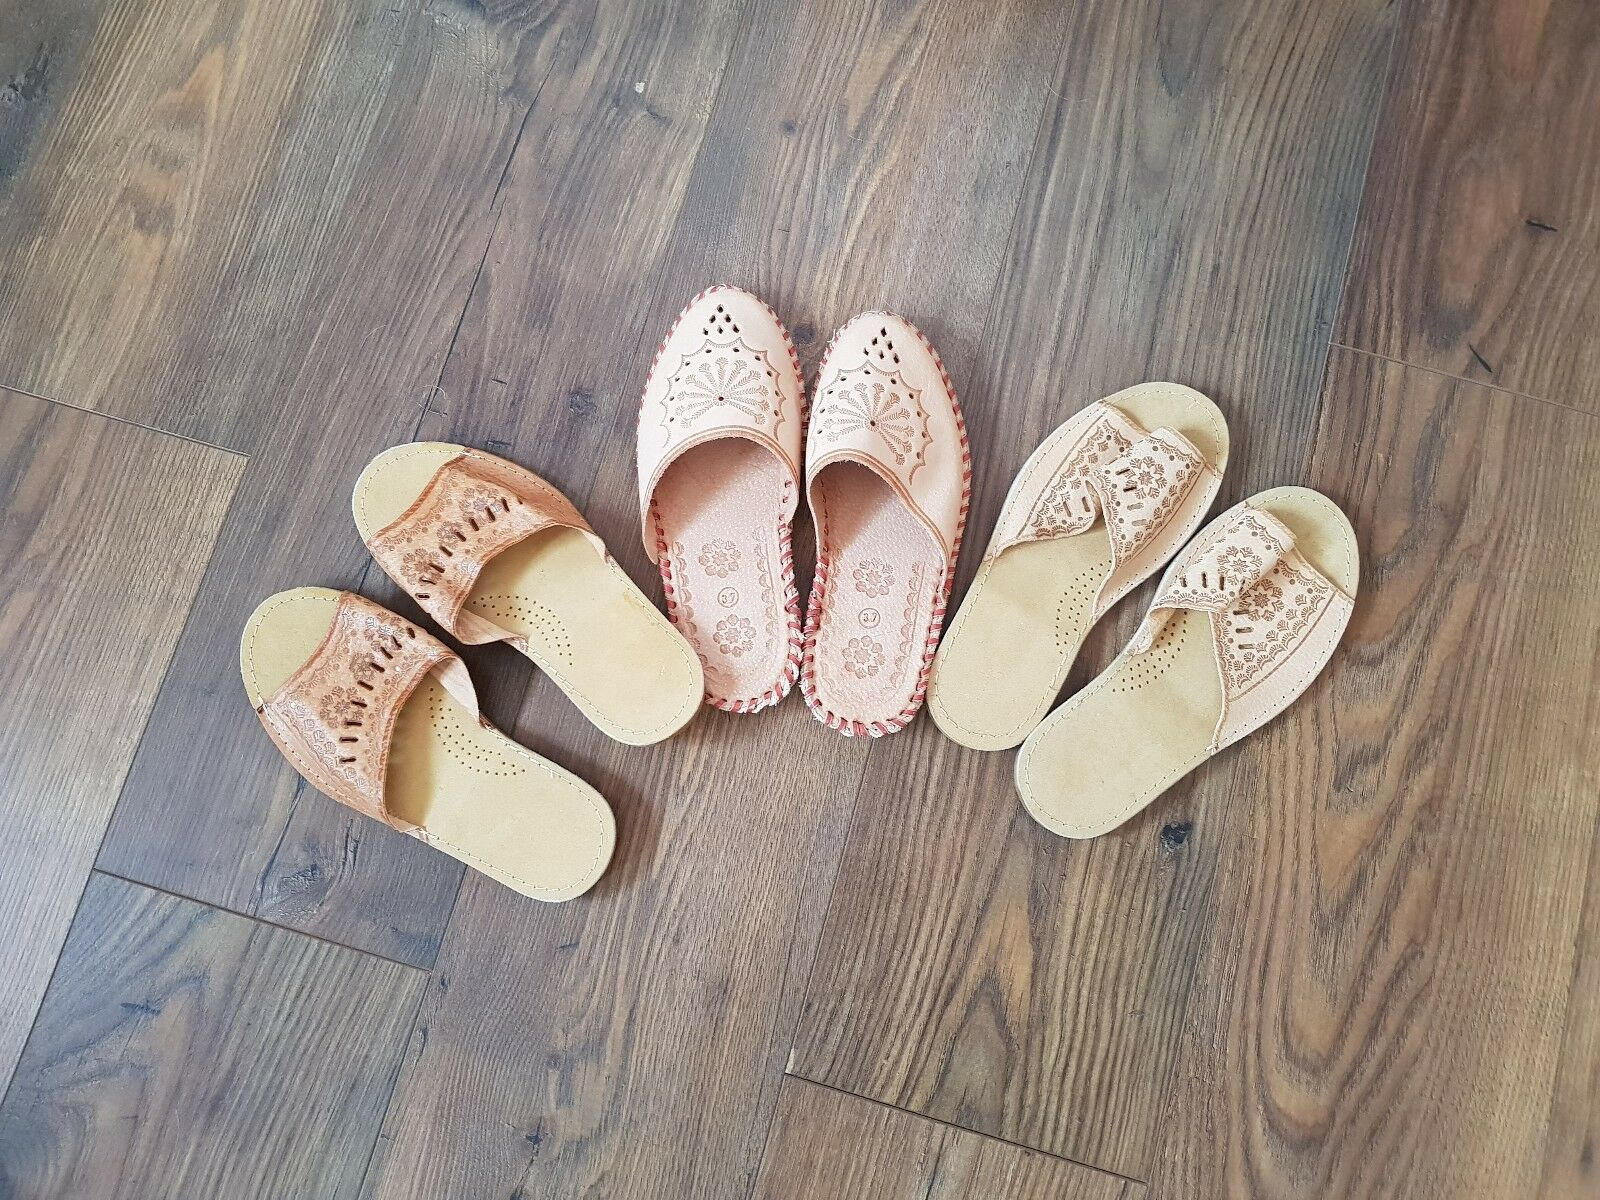 Man's/Woman's womens leather slippers stable size 3,4,5,6,7 New market stable slippers quality Beautiful and charming 97d7c7